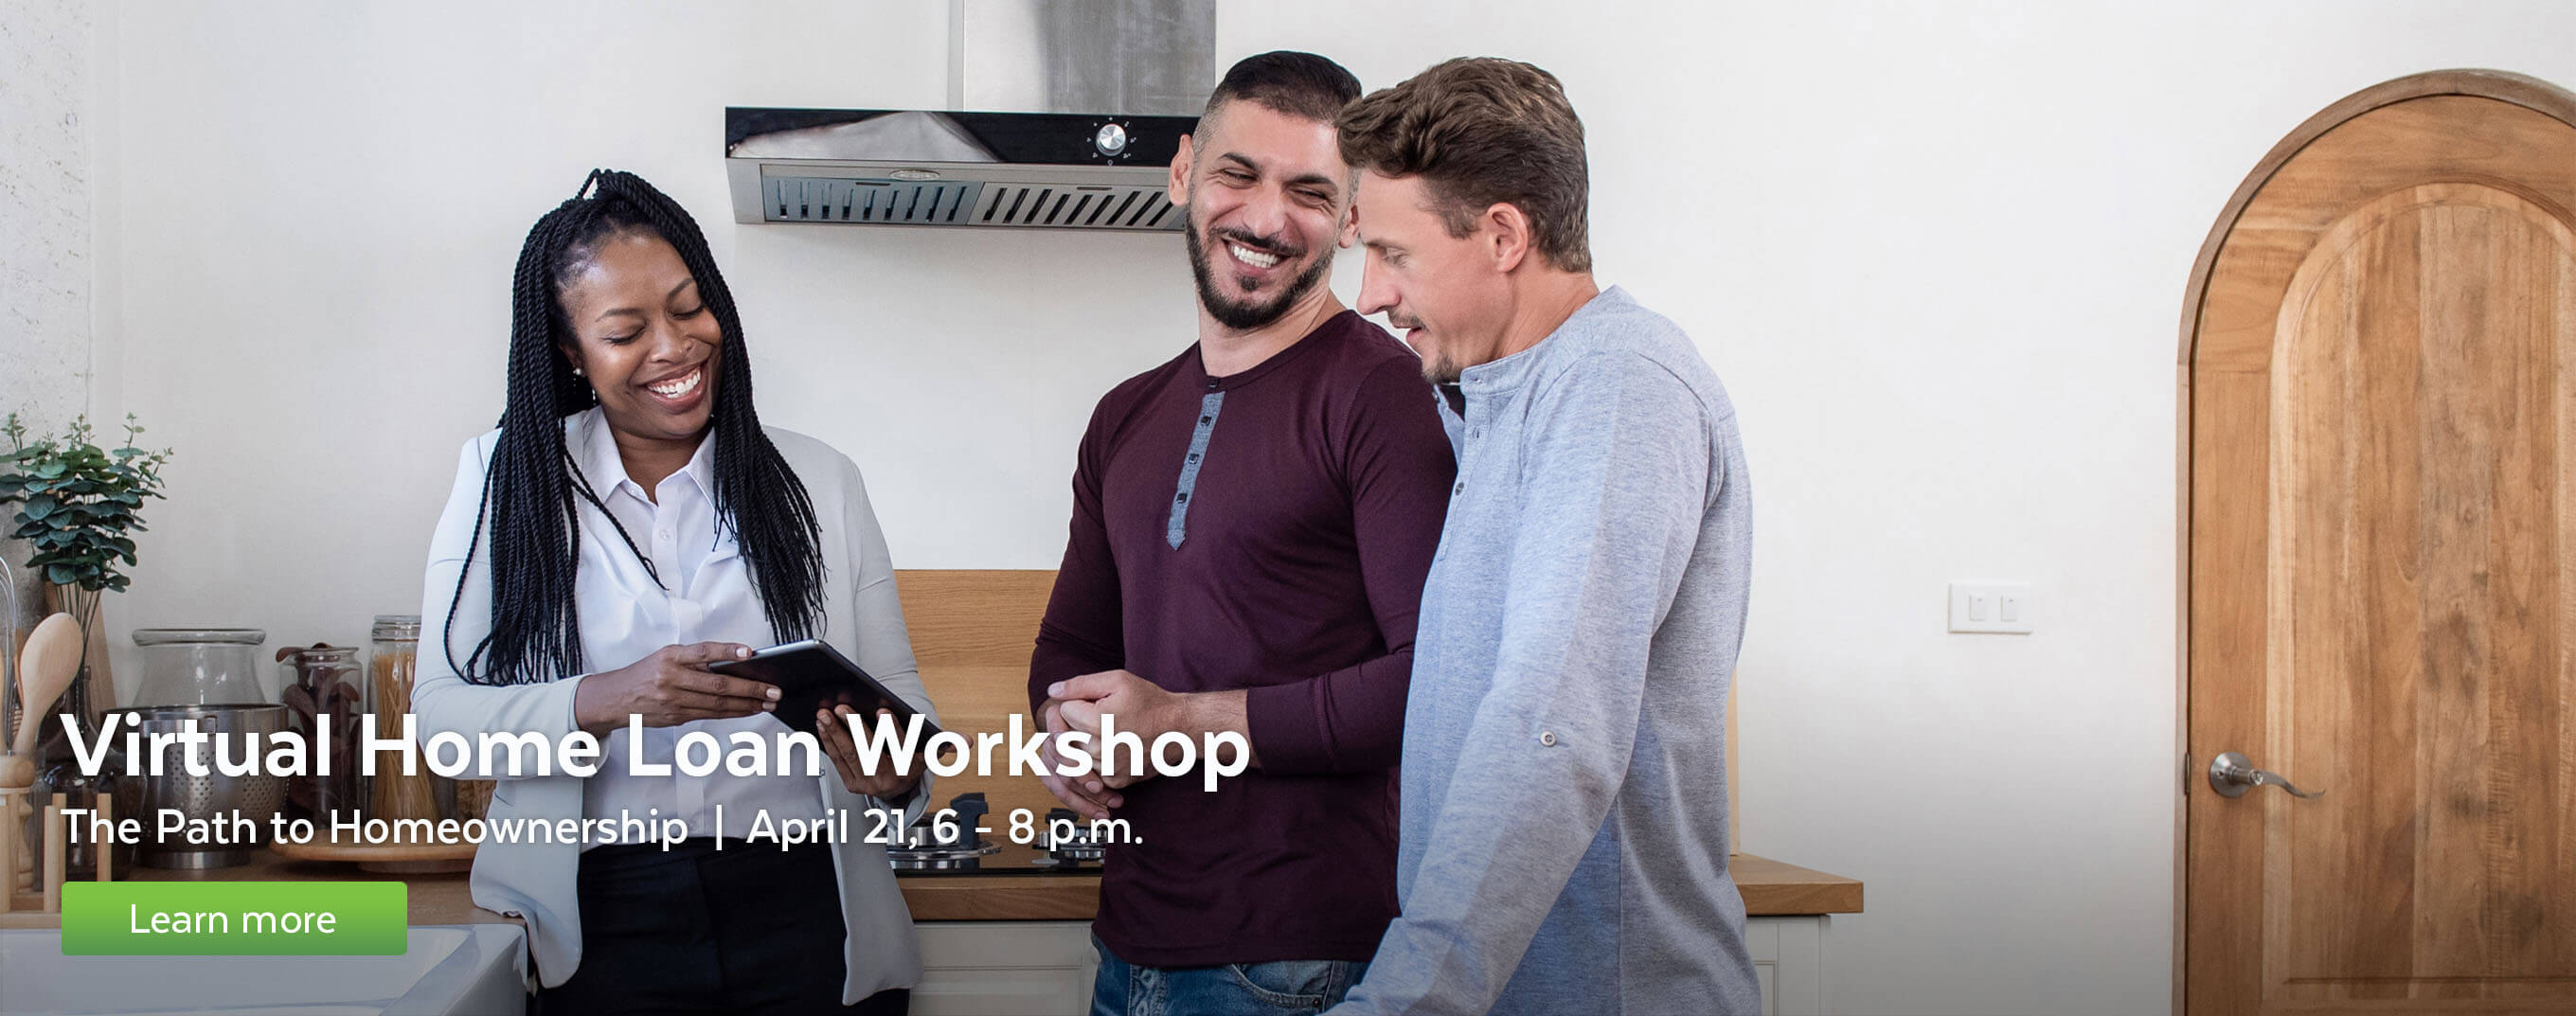 Attend a virtual Home Loan Workshop on April 21.